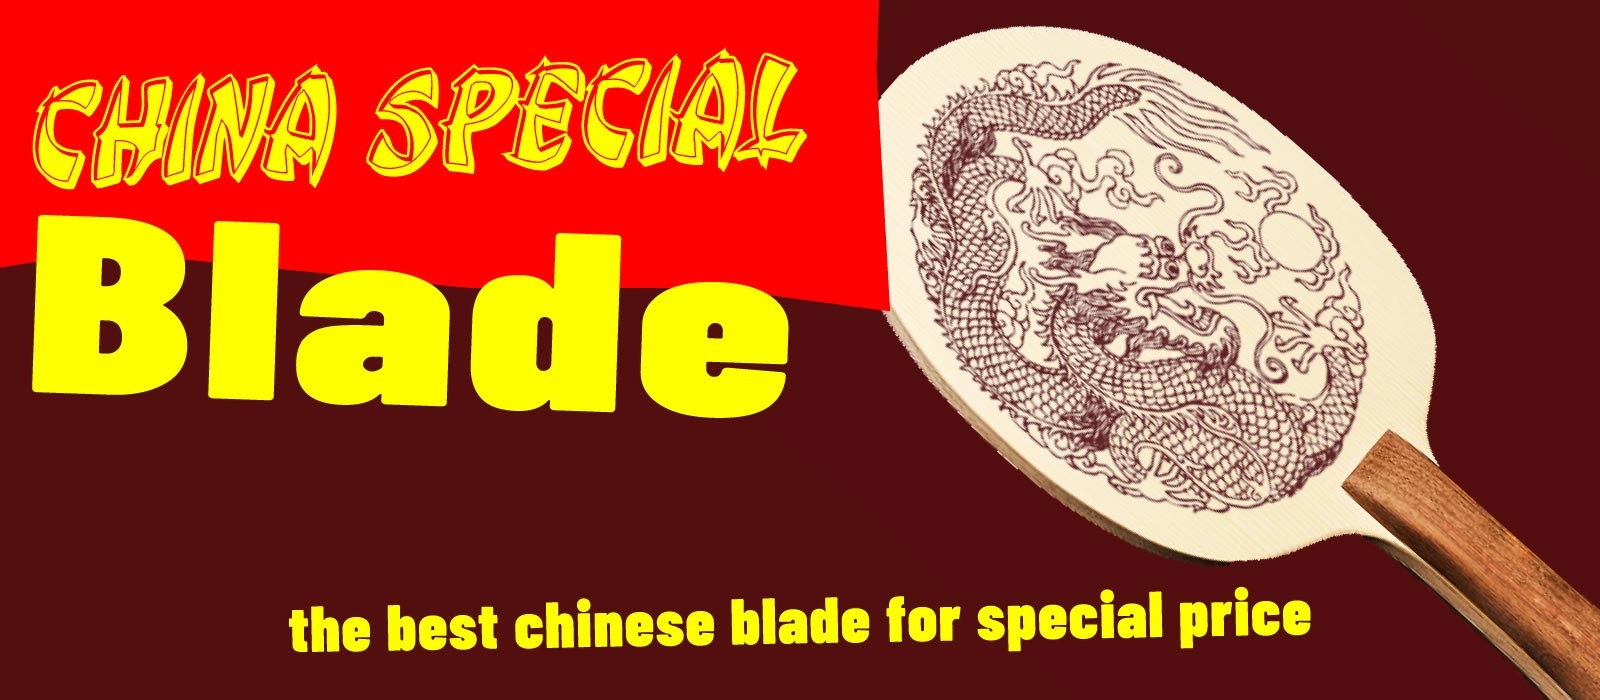 China-Special Blades - Def - Off